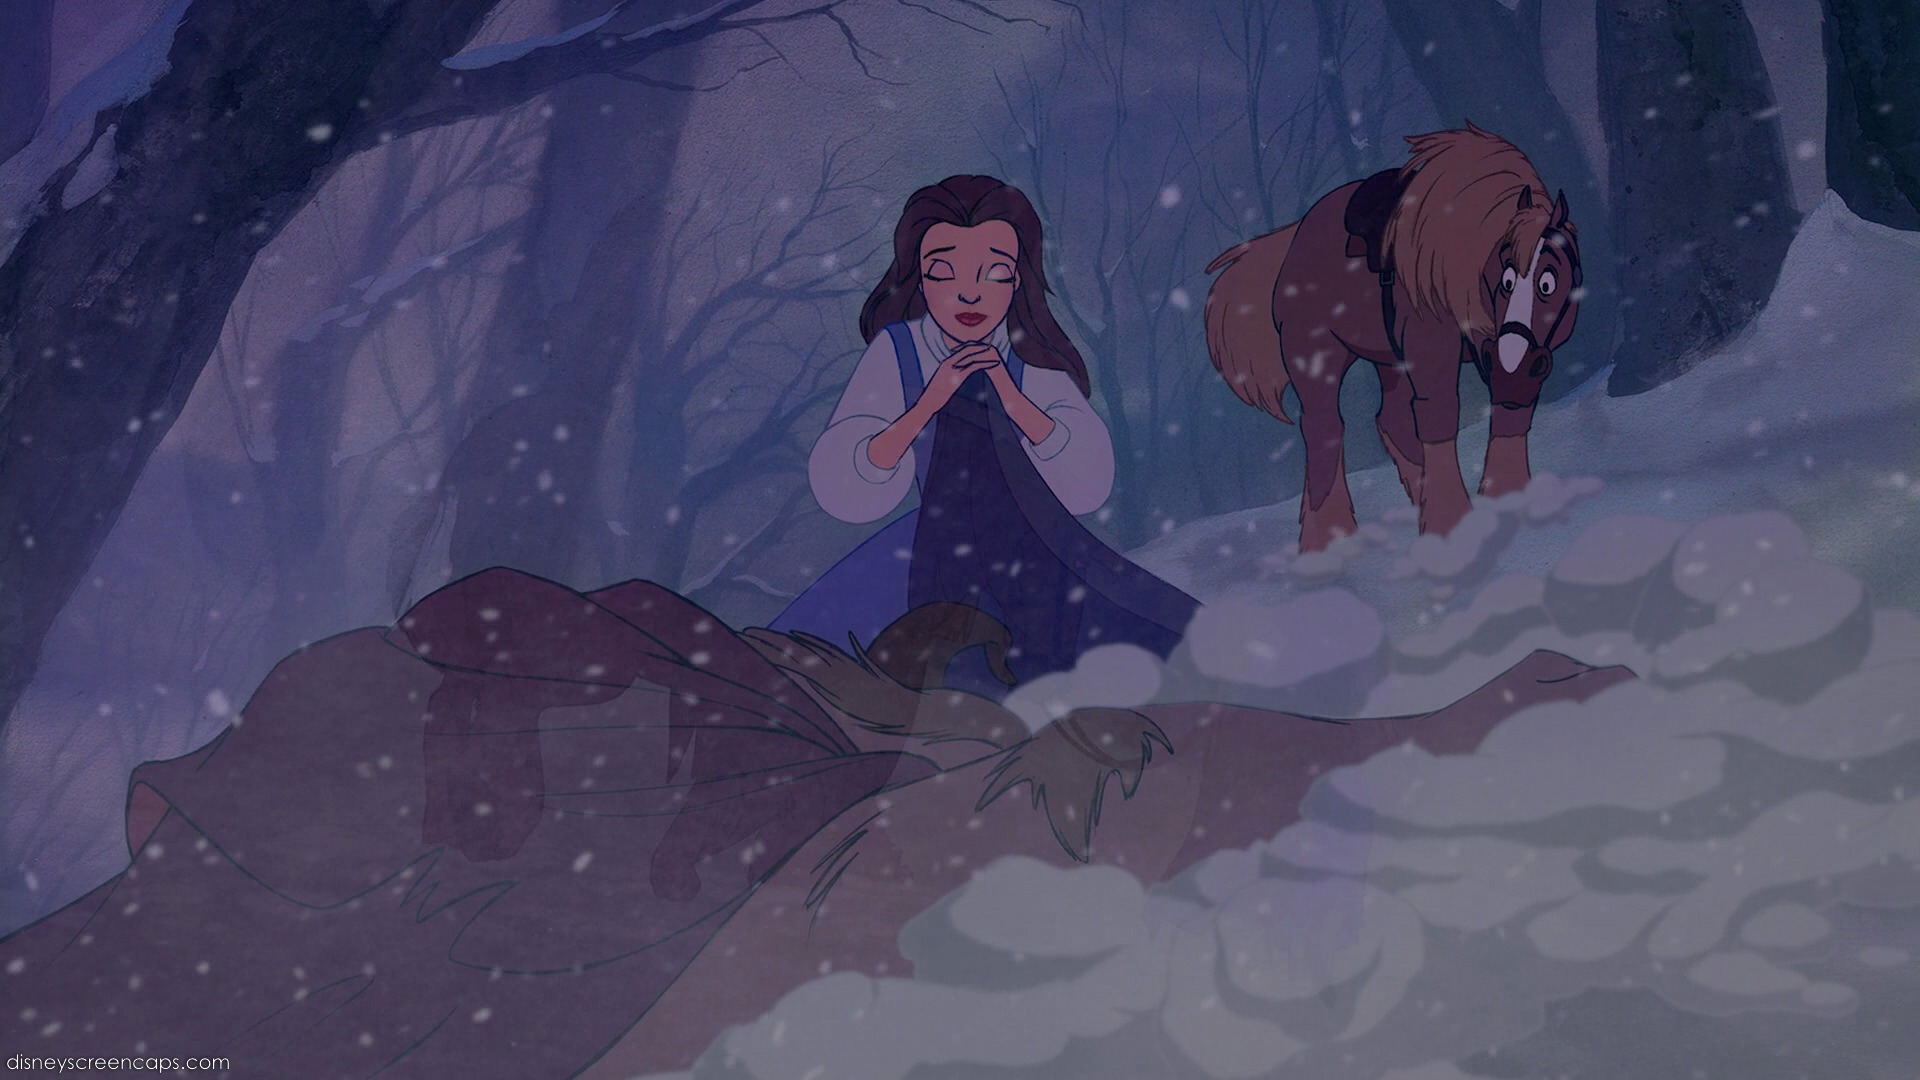 The Wolves Attack scene